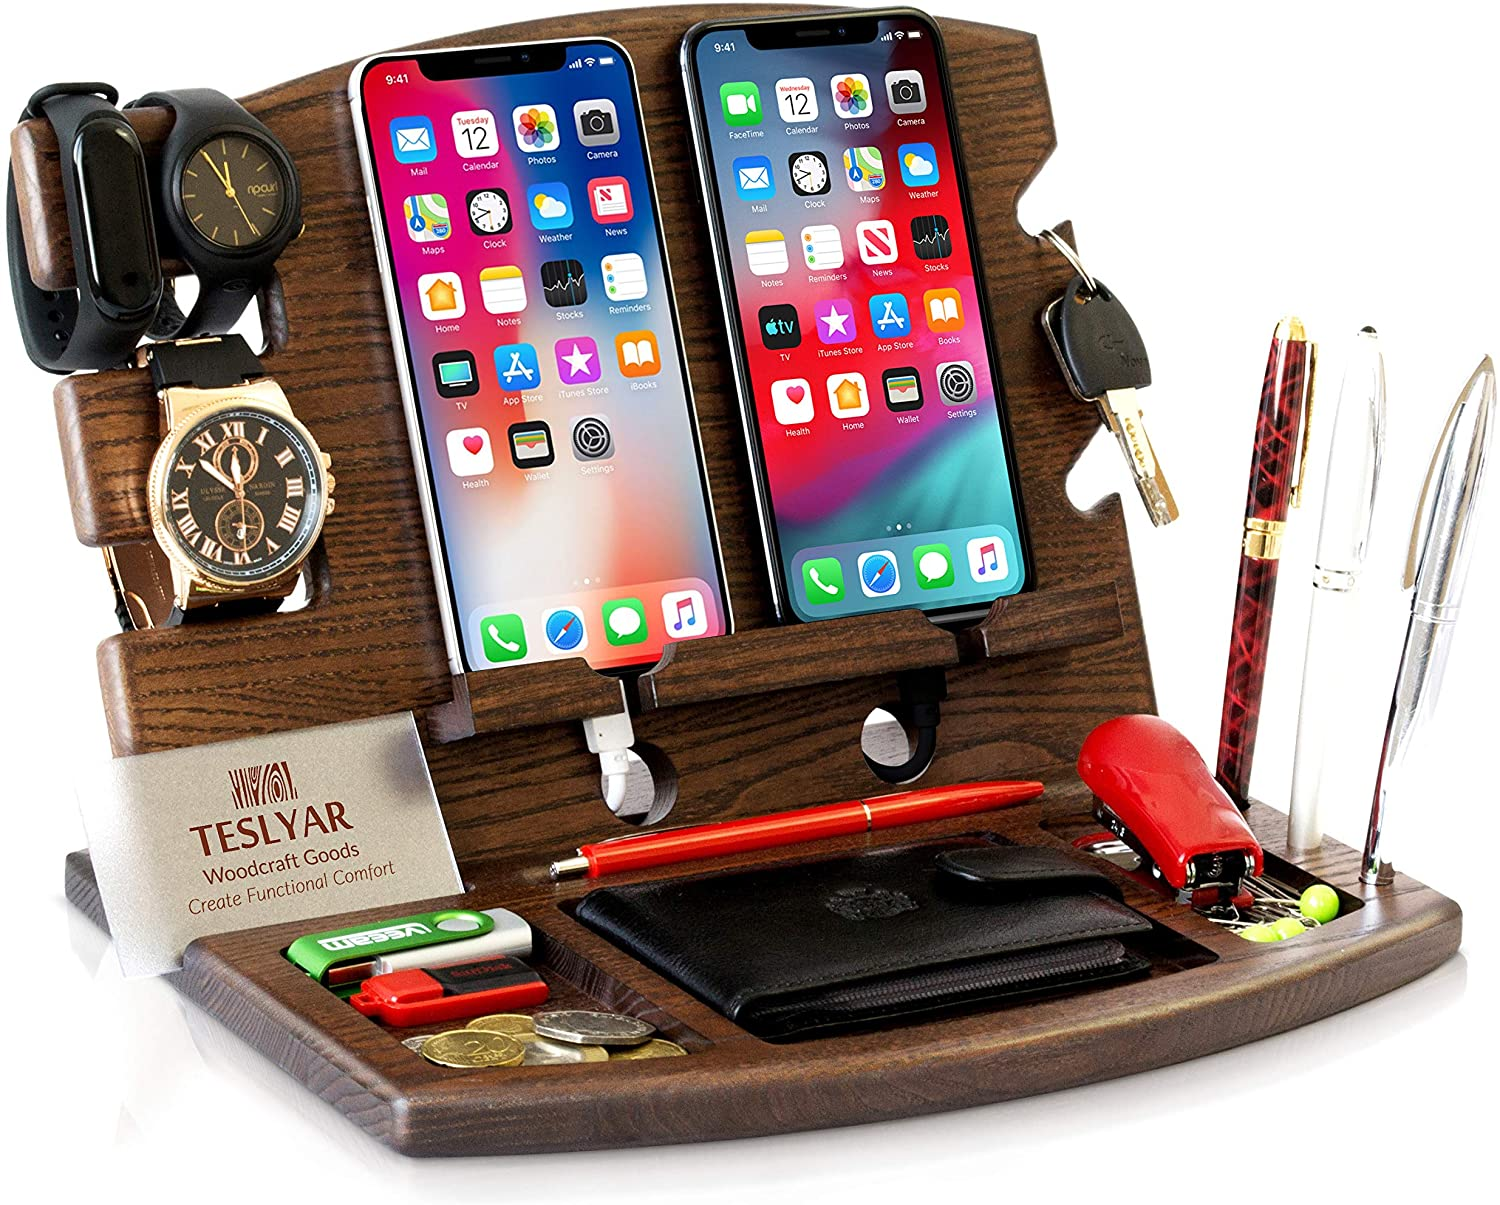 DUAL PHONE HOLDER + iPhone Holder + Android Phone Holder